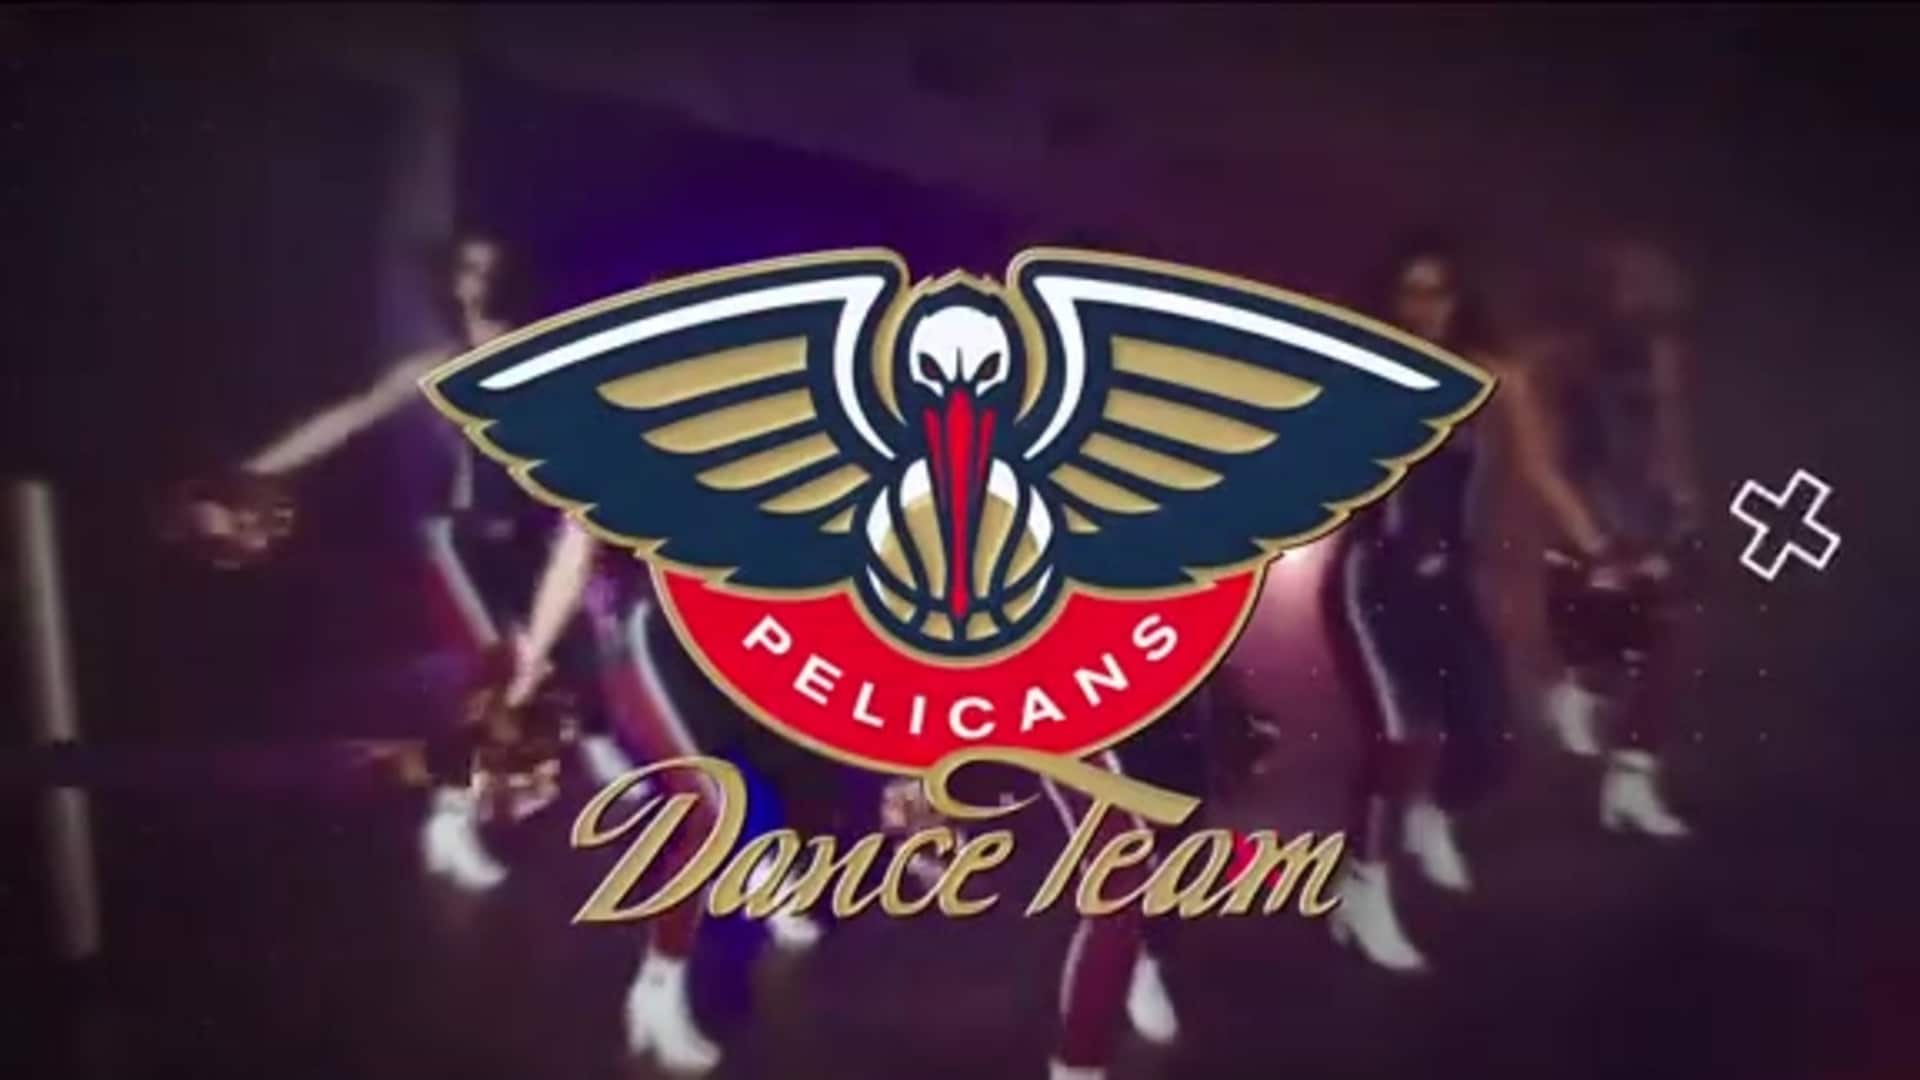 Entertainment: Pelicans Dance Team 2nd quarter performance - January 26 vs. Boston Celtics